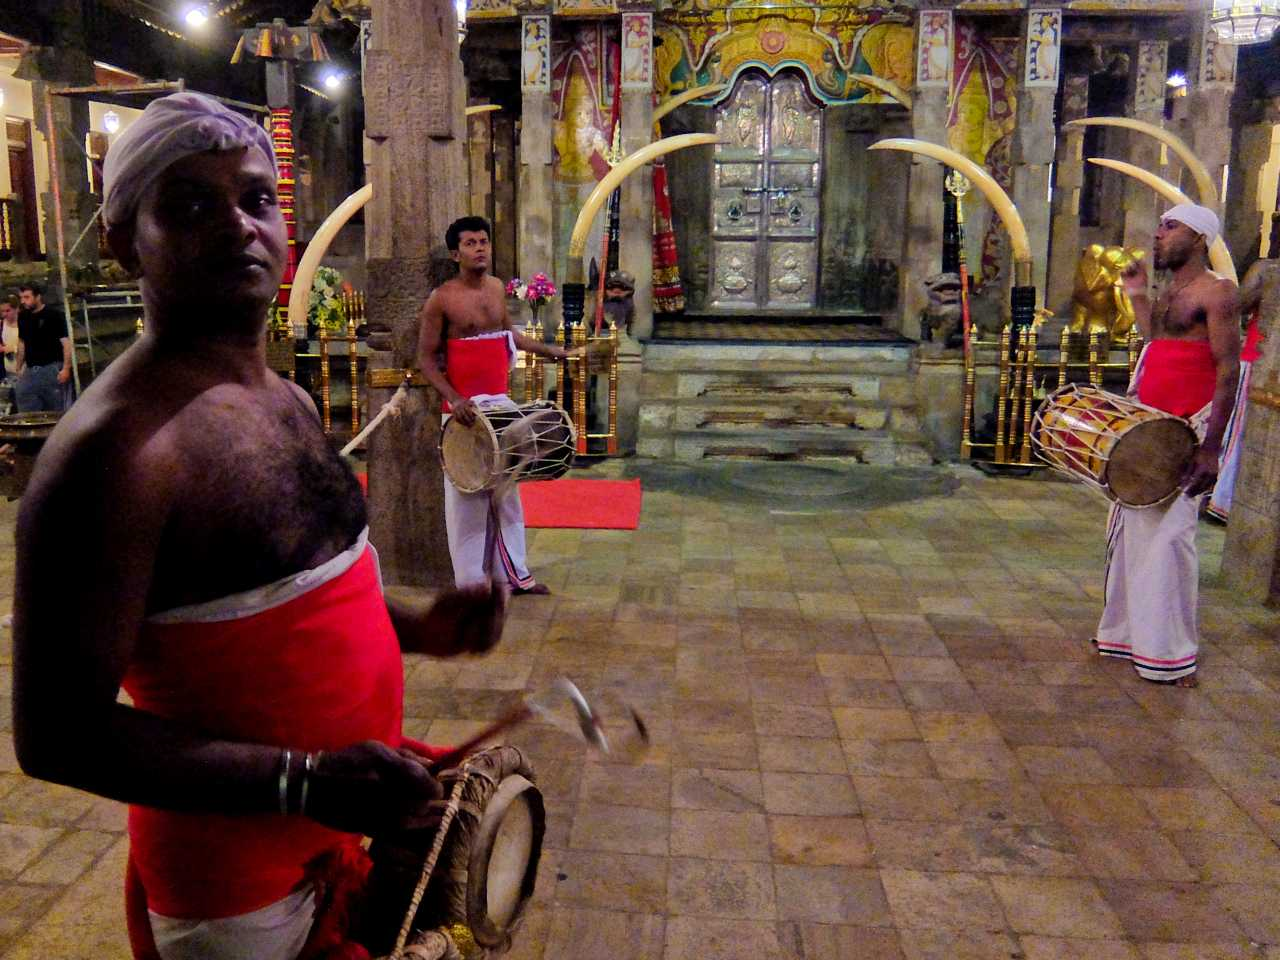 Sri Lanka road trip - Drummers at Temple of the Tooth, Kandy